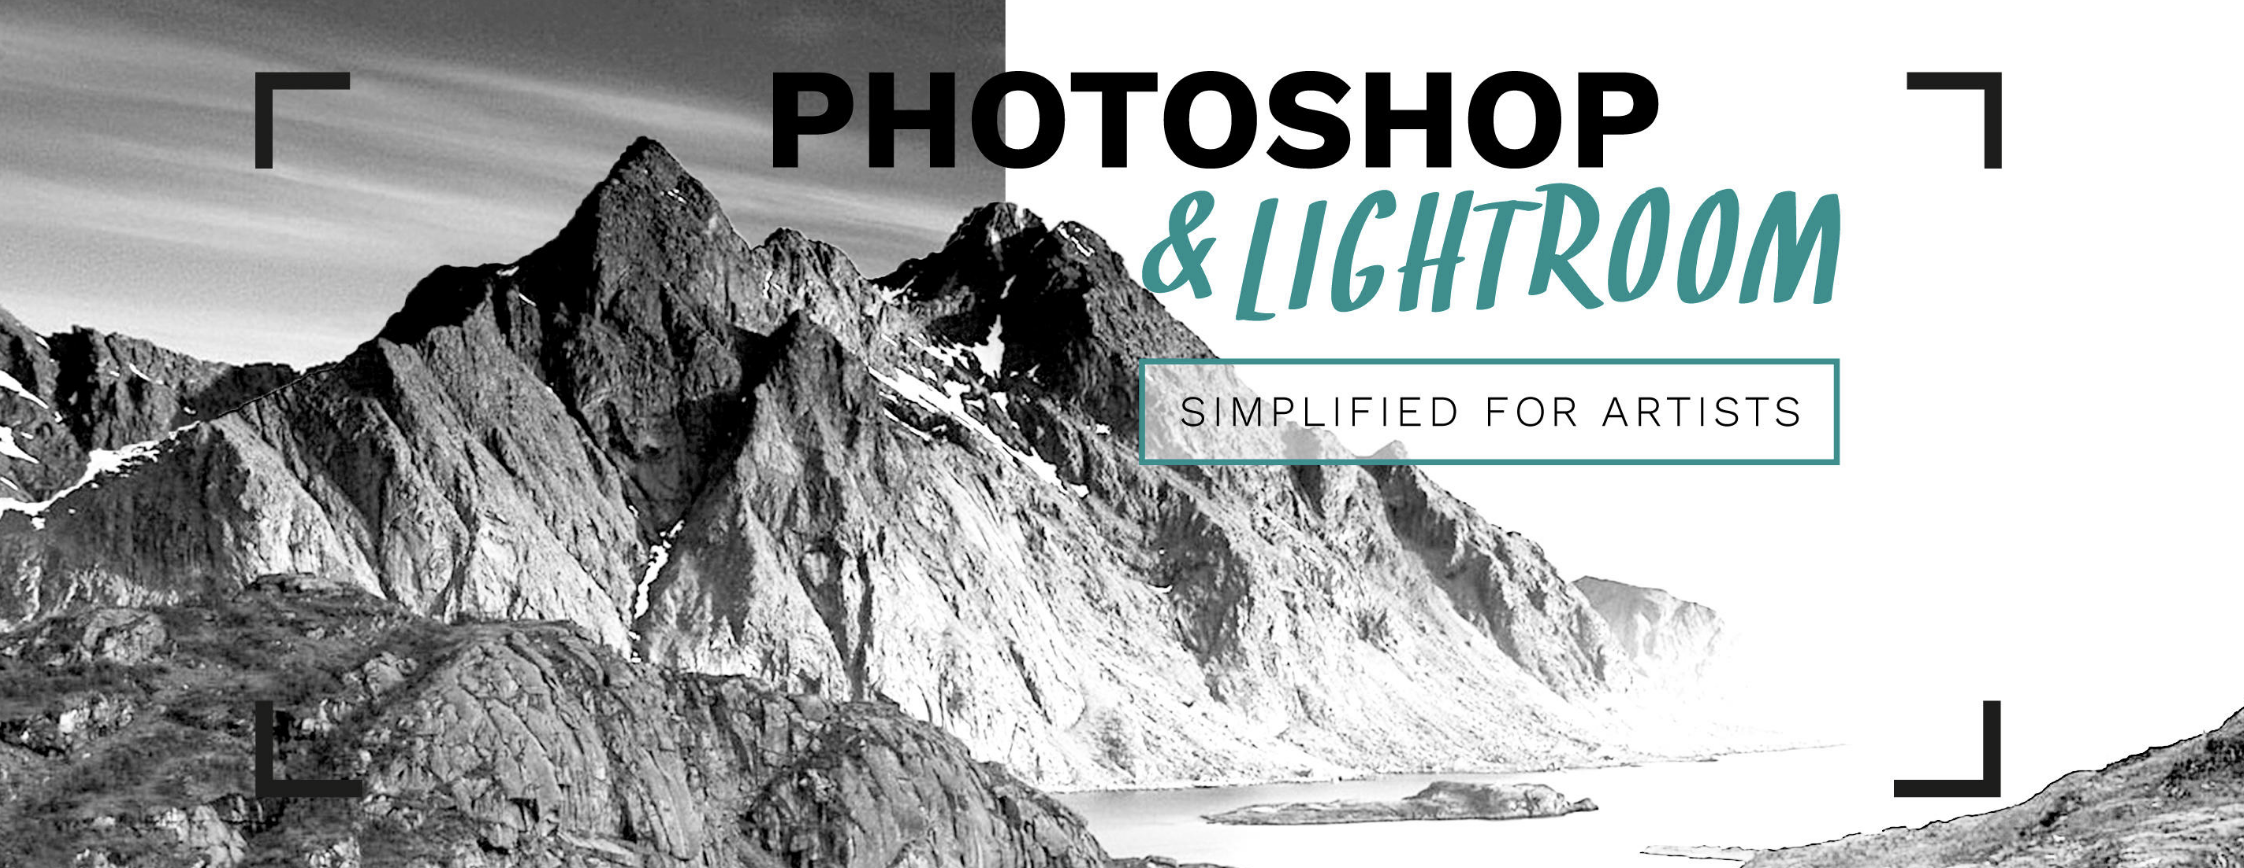 photoshop_lightroom_for_artists.png